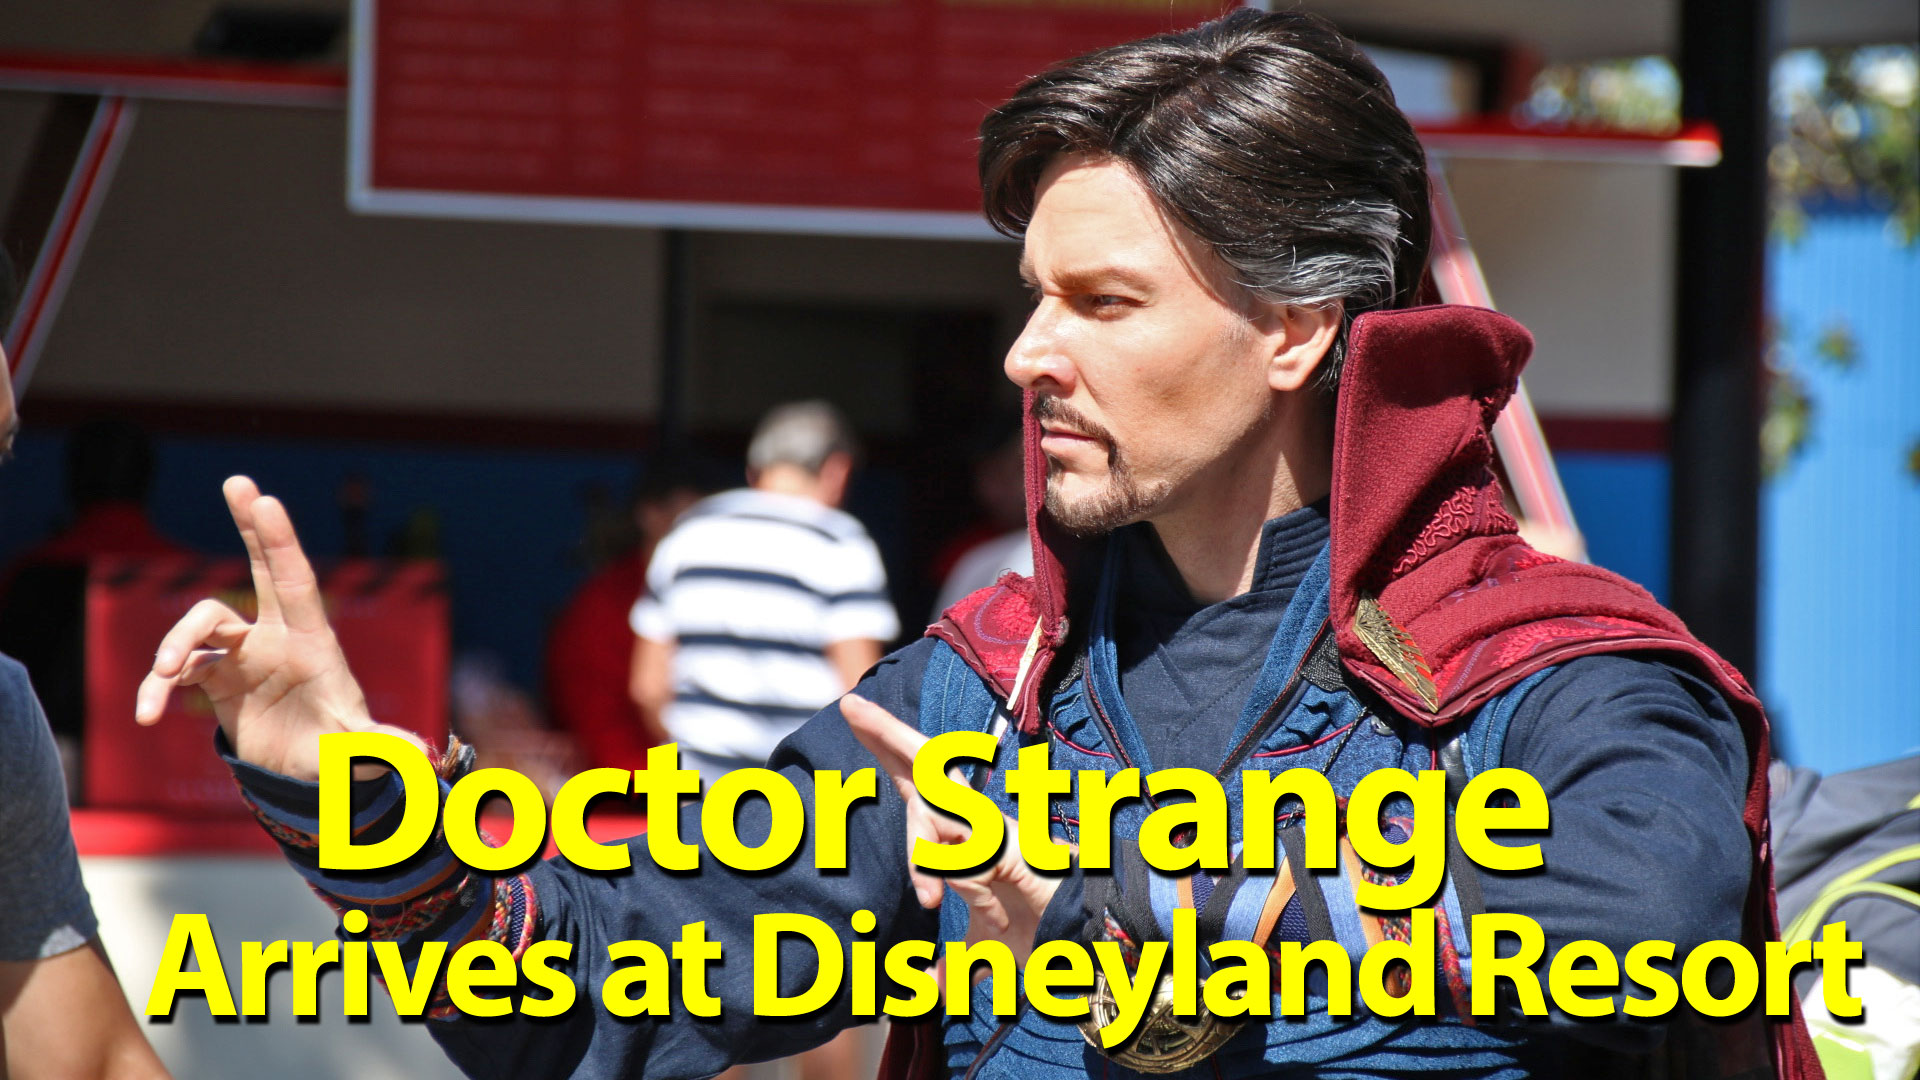 Doctor Strange Arrives at Disney California Adventure to Teach Mystic Arts to Disneyland Resort Guests